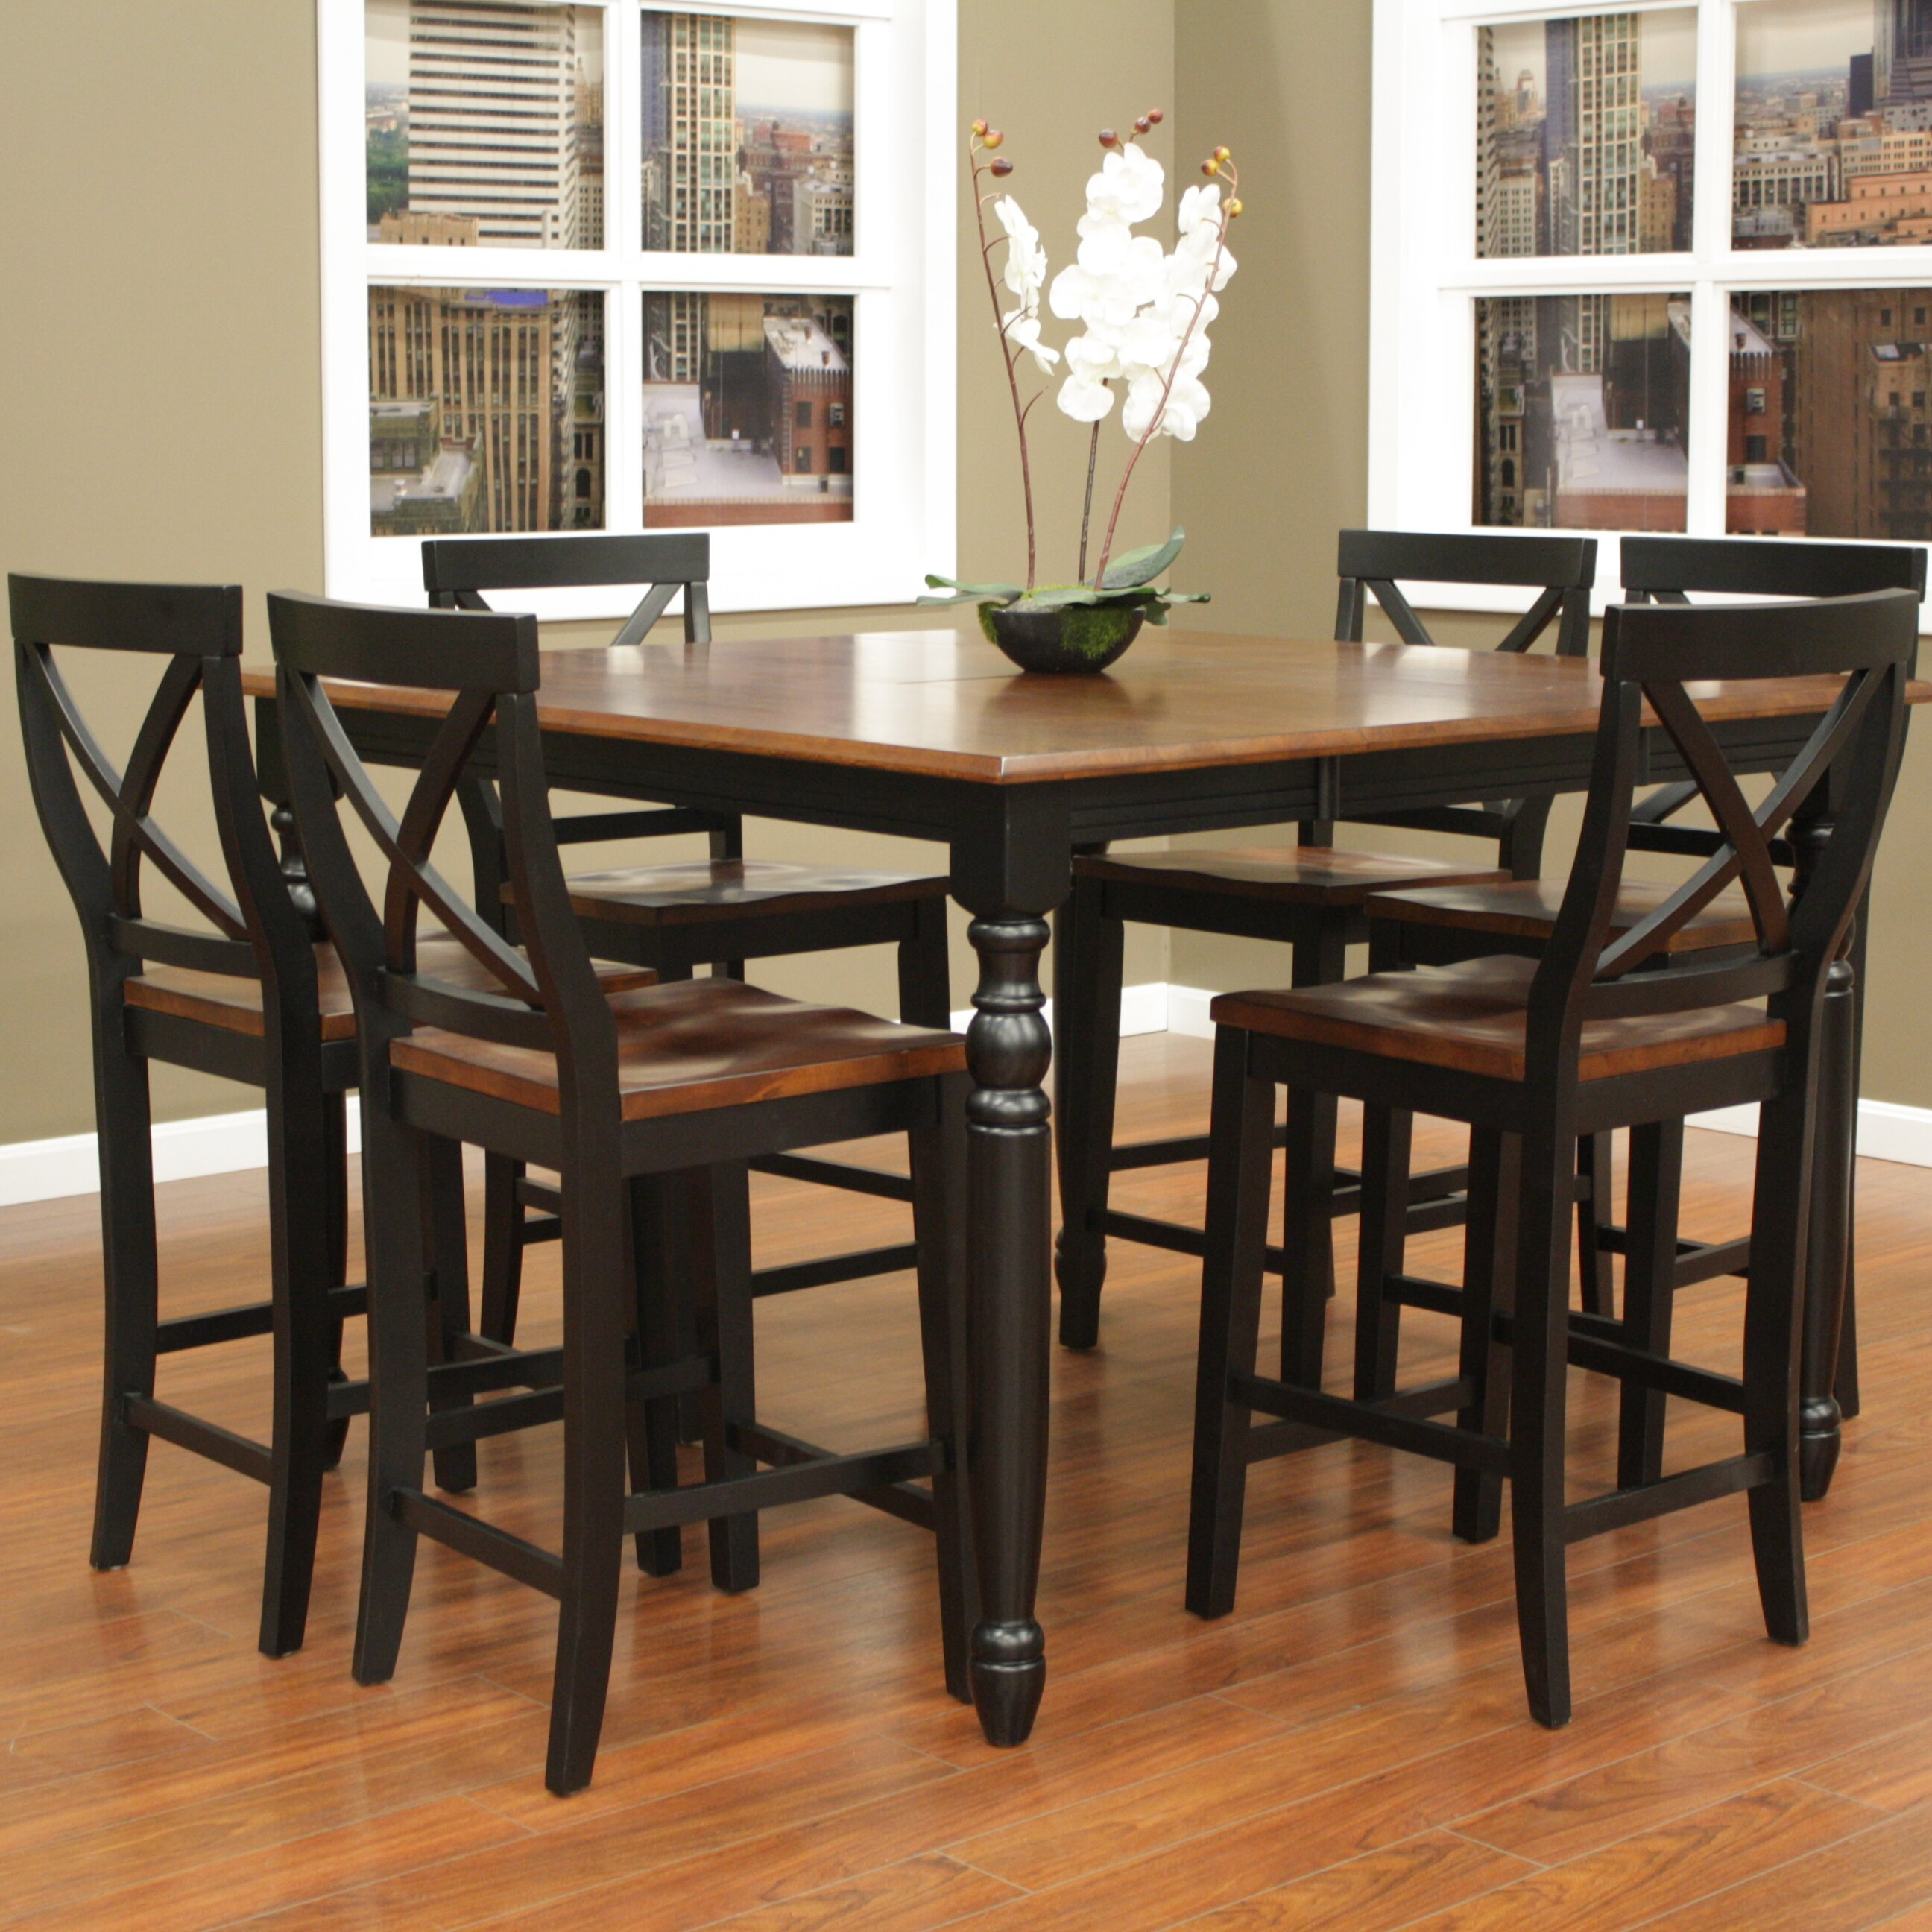 7 Piece Counter Height Dining Room Sets: American Heritage Berkshire 7 Piece Counter Height Pub Set